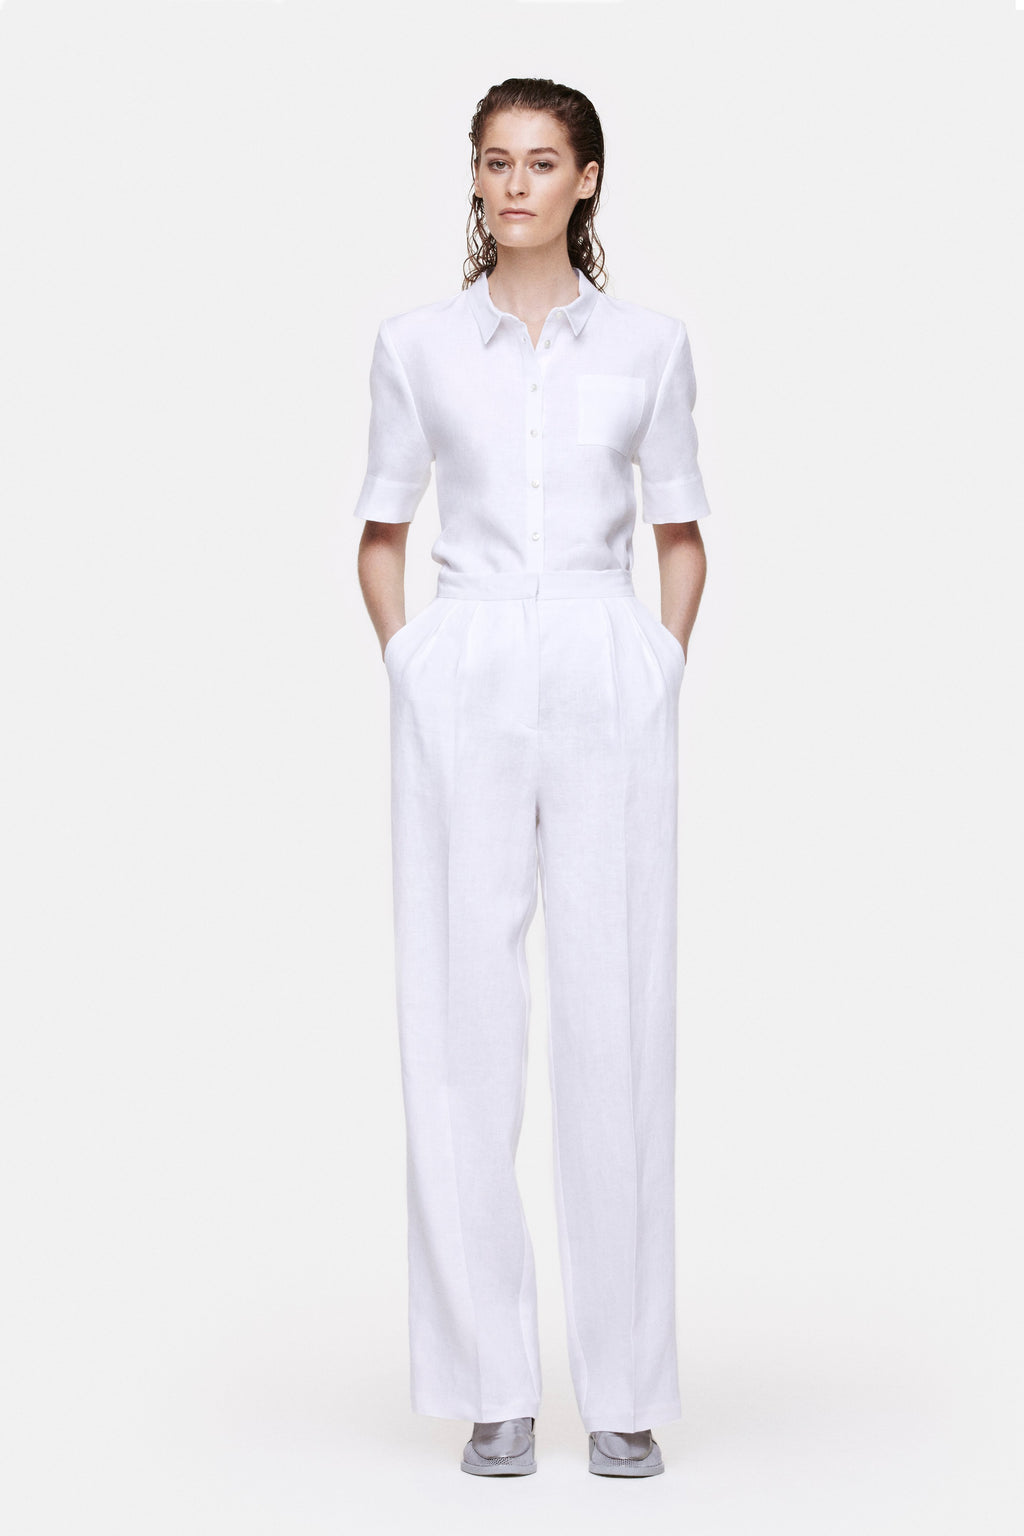 KERO trousers white